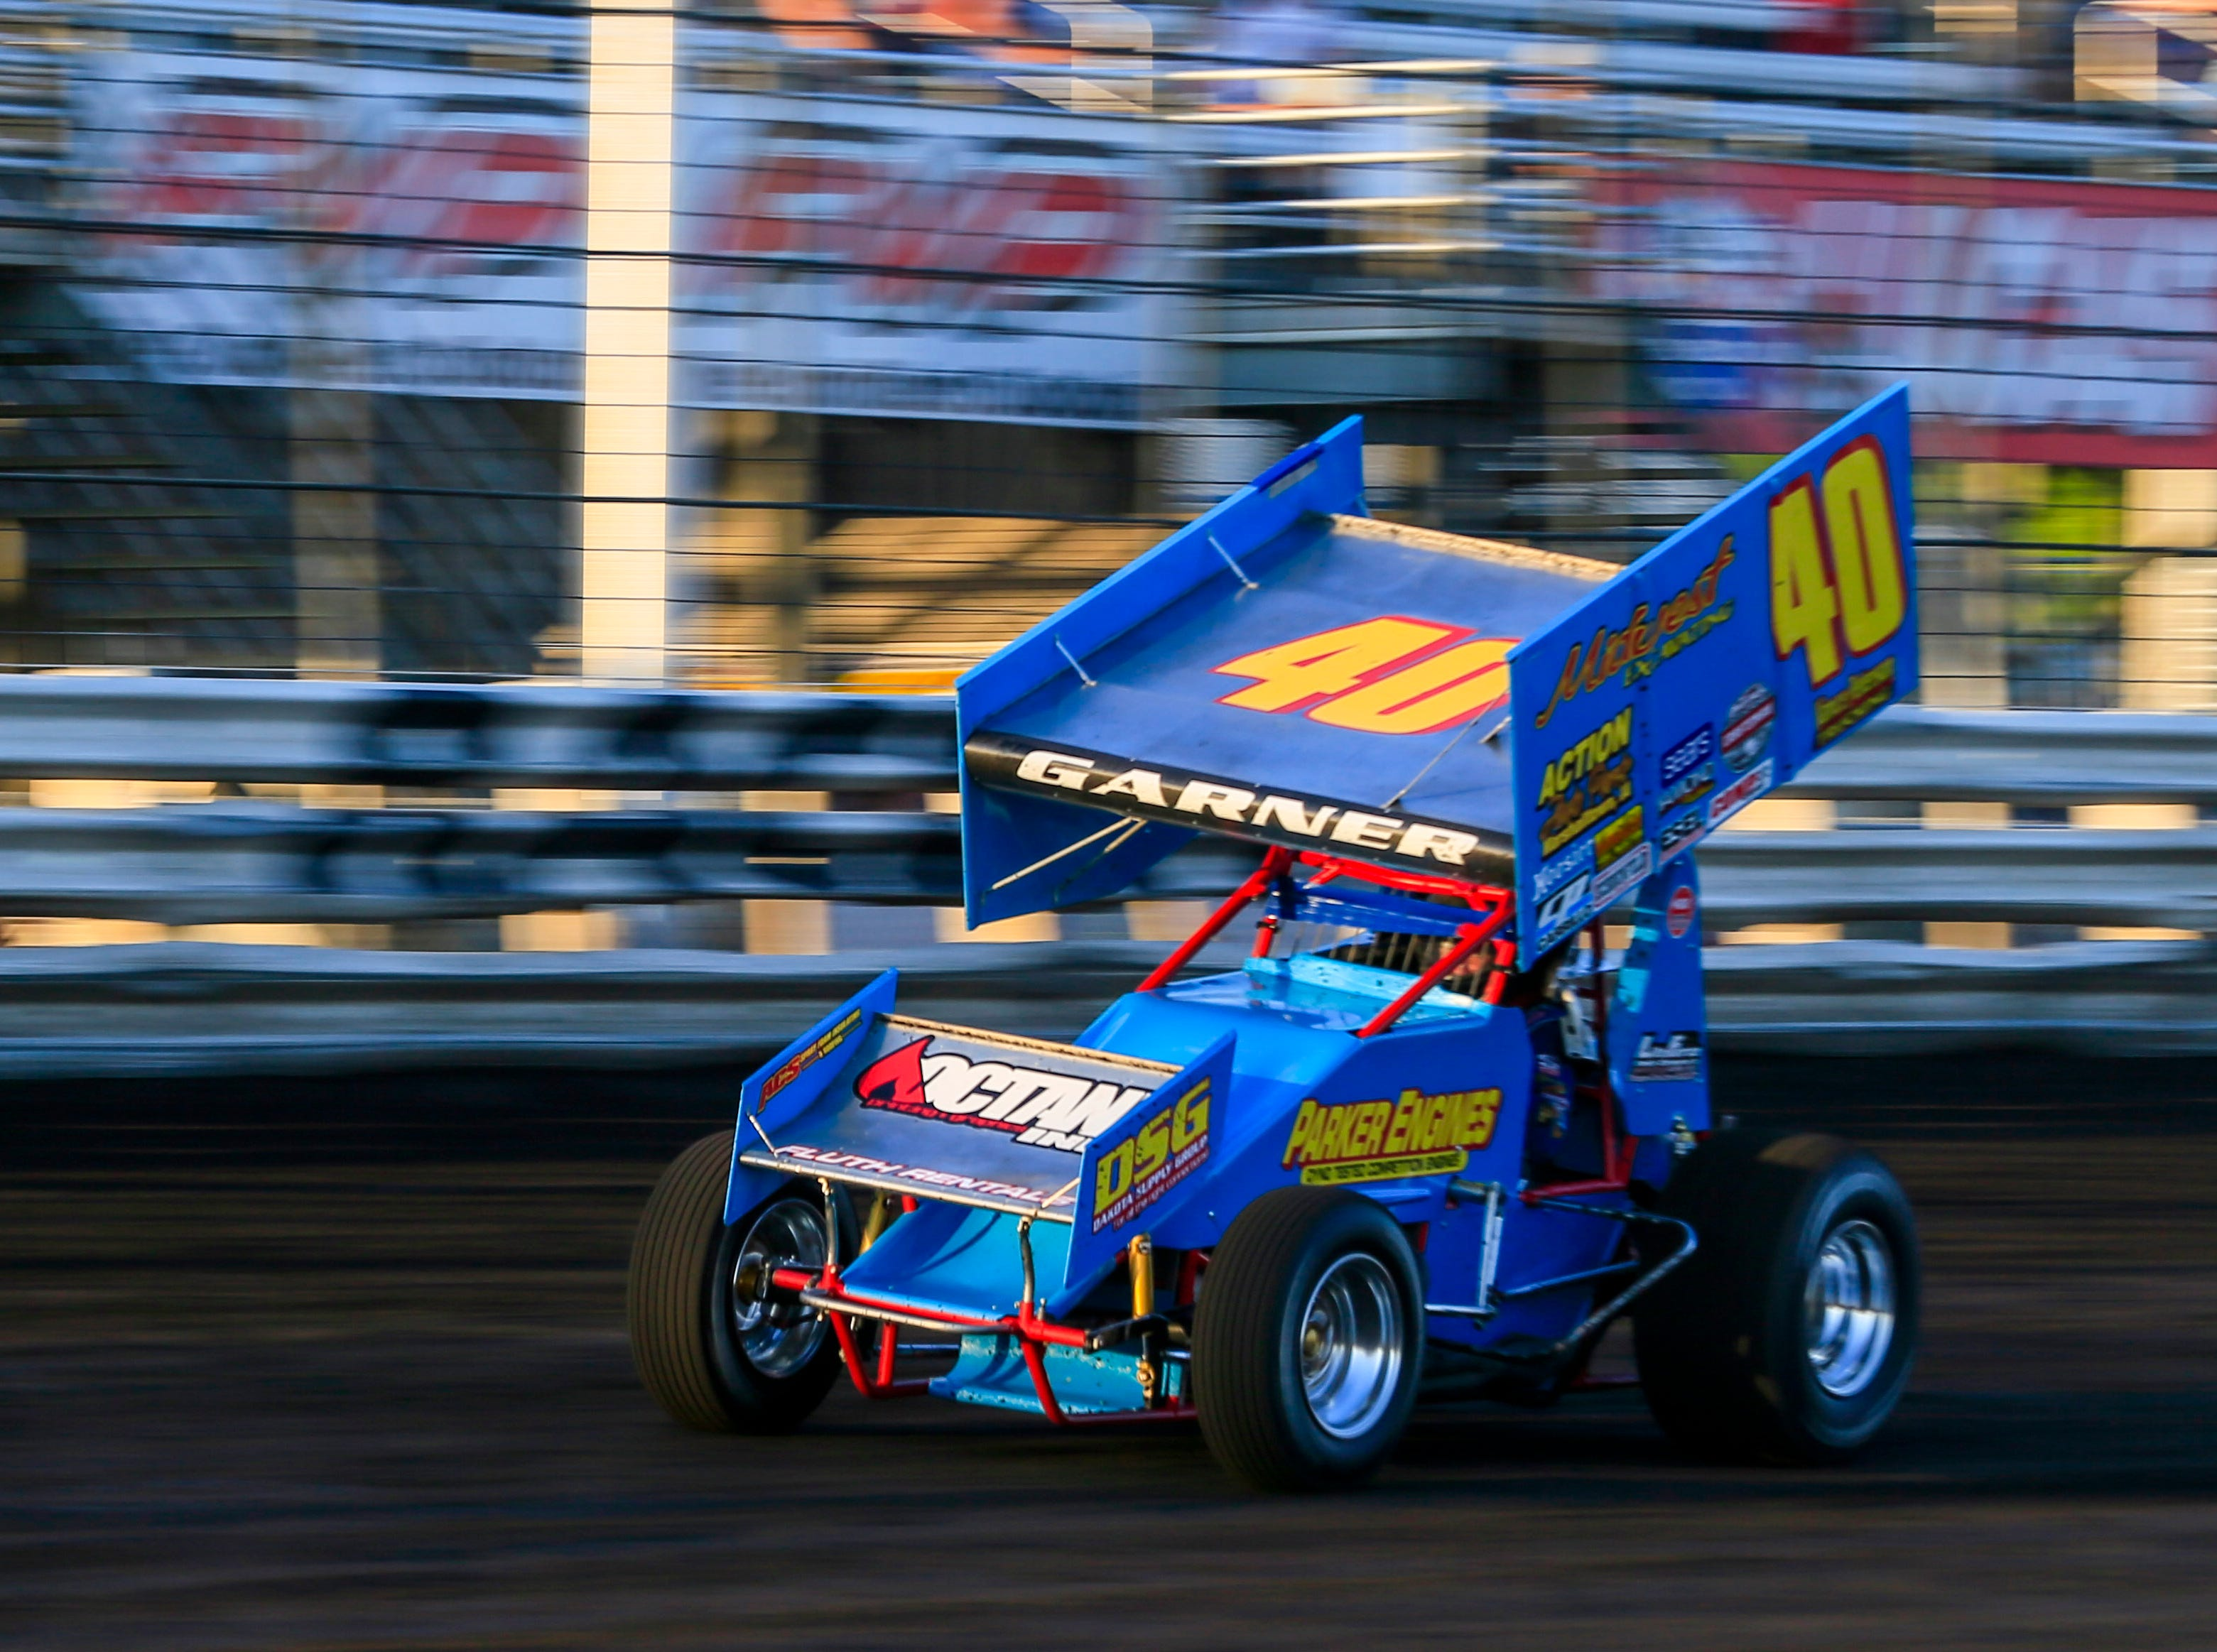 Clint Garner during the Knoxville Nationals Wednesday, Aug. 8, 2018.